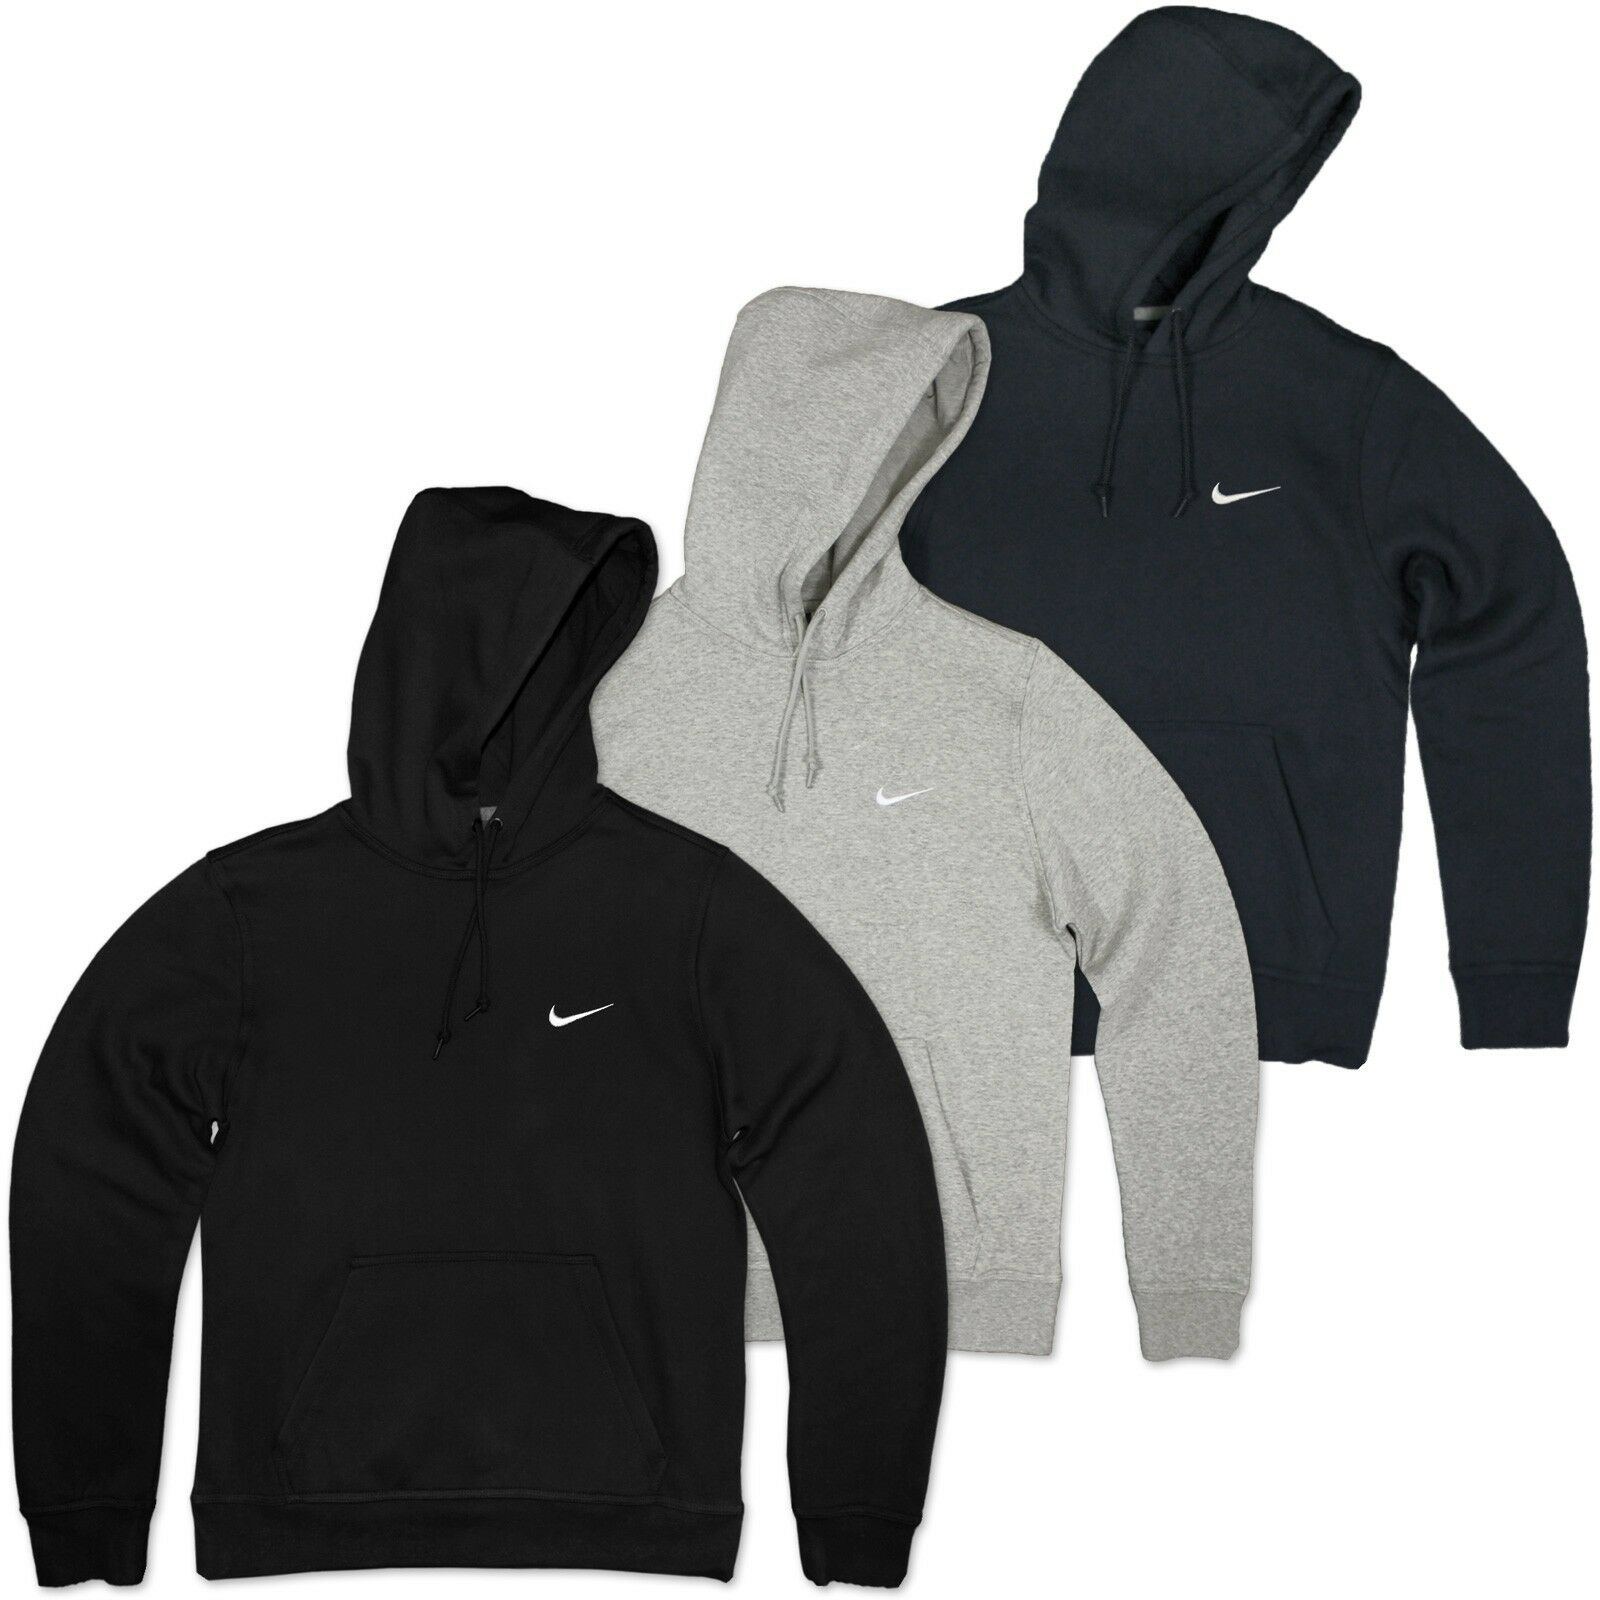 NIKE SWOOSH HOODIE FLEECE KAPUZEN PULLI SWEATER JUMPER HERBST SWEATER GRAU M